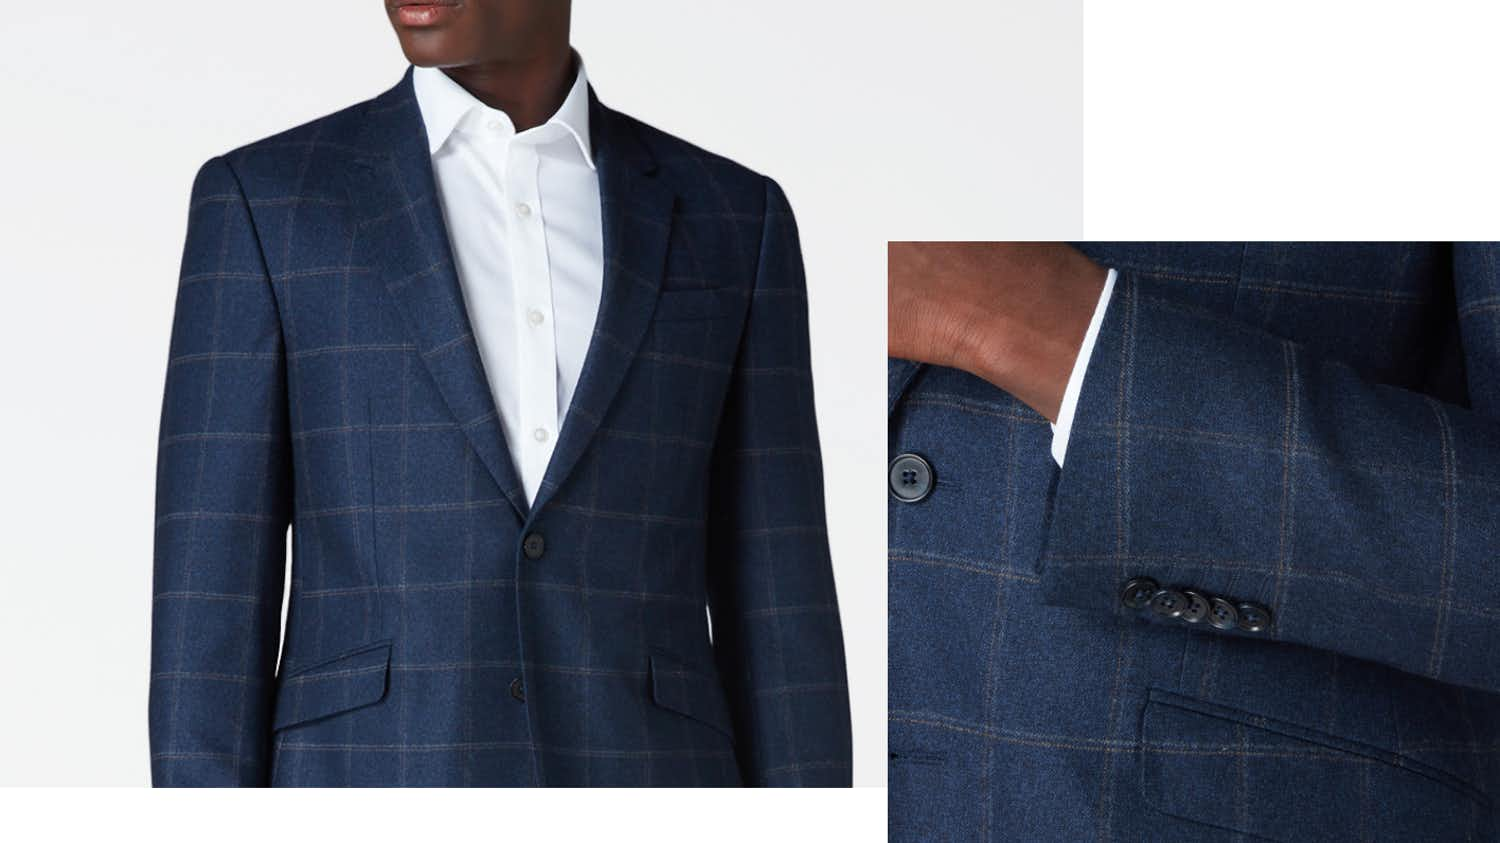 Sale Suits Up to 60% Off